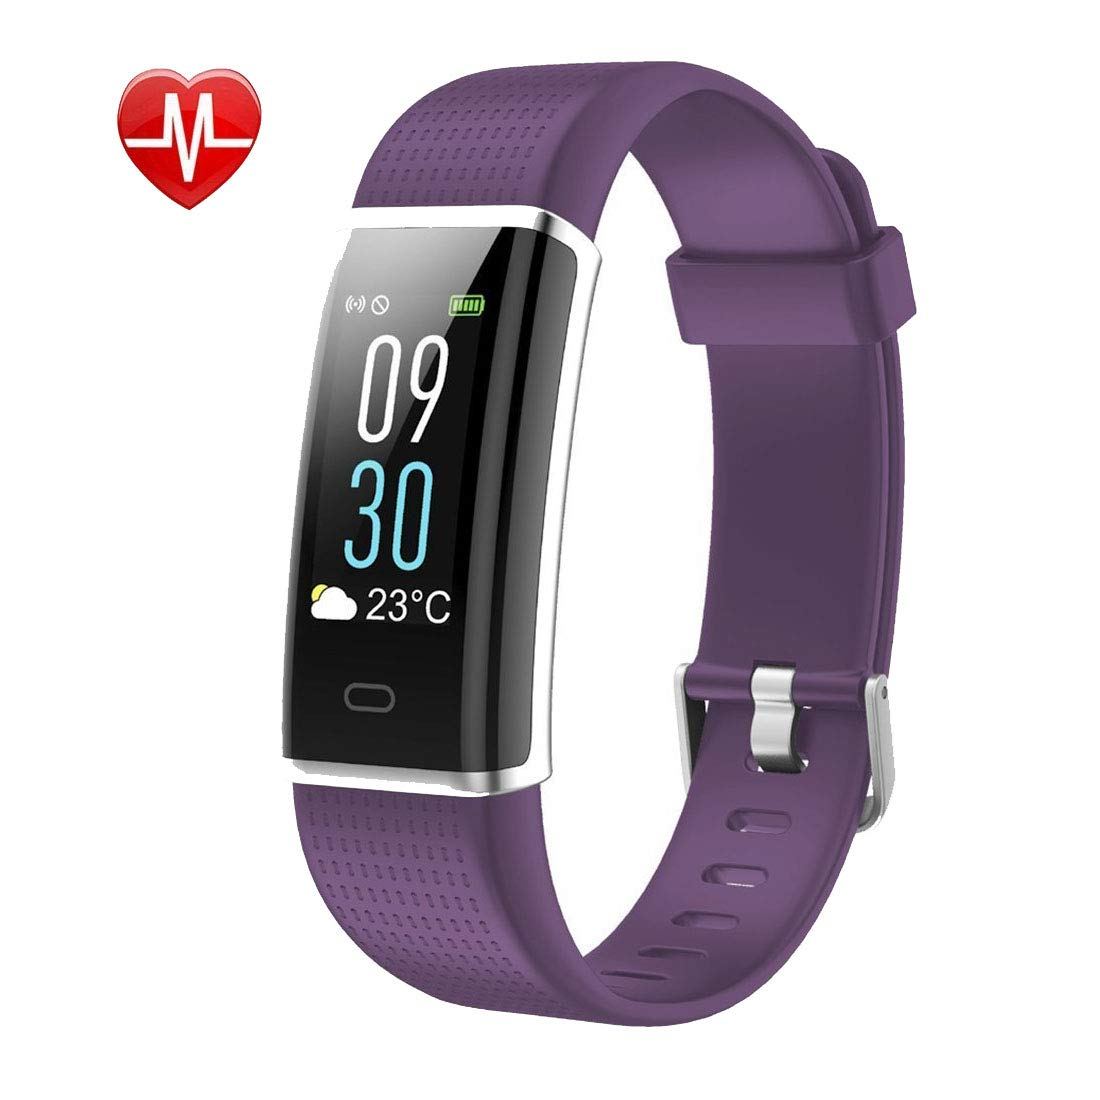 Letuboner Fitness Tracker,Color Screen Activity Tracker with Heart Rate Monitor,IP68 Waterproof Smart Wristband with Pedometer Calorie Counter Watch Sleep Monitor for Men Women Kids (Purple)